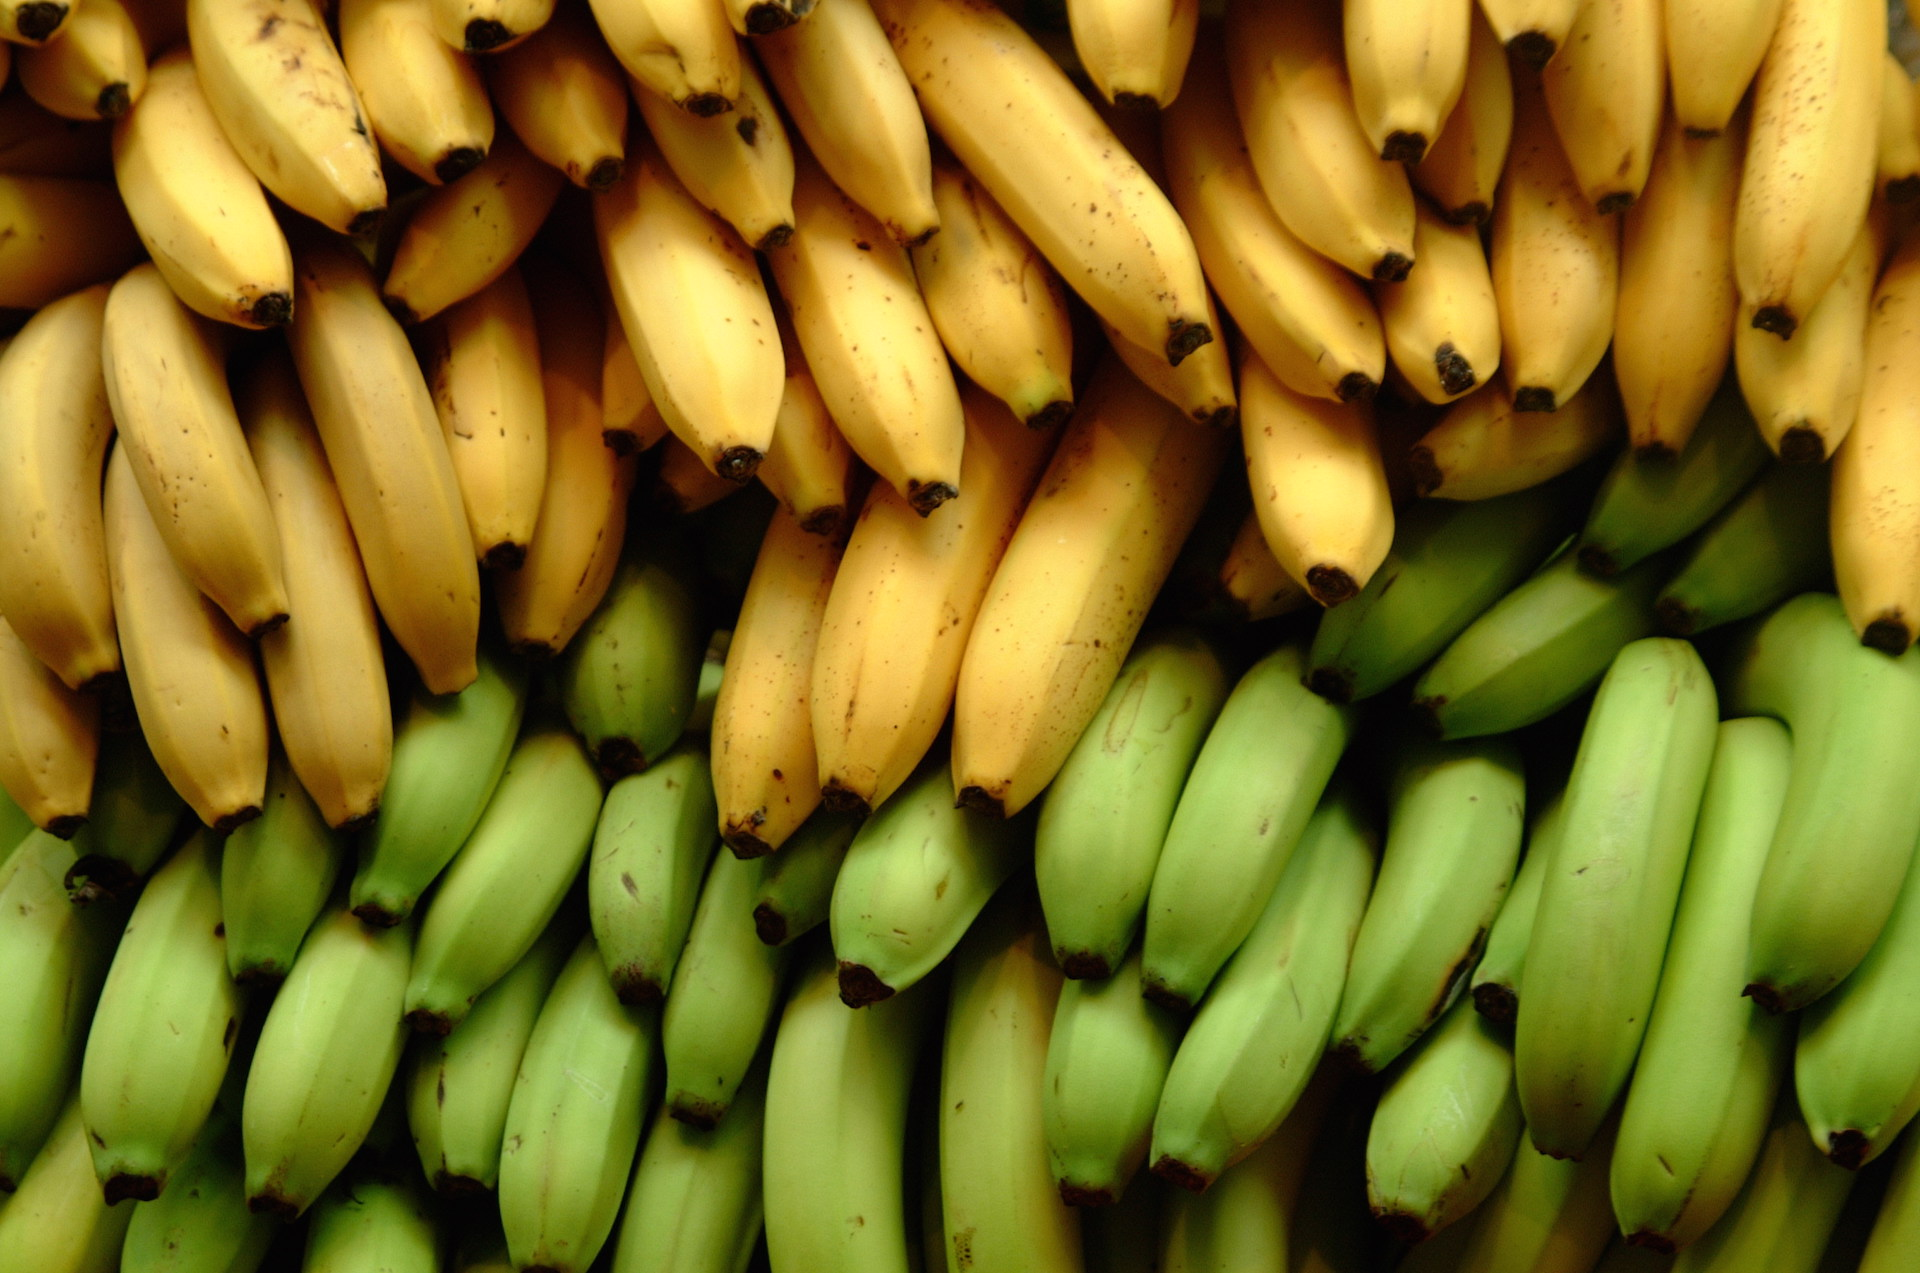 Banana And Plantain Farming